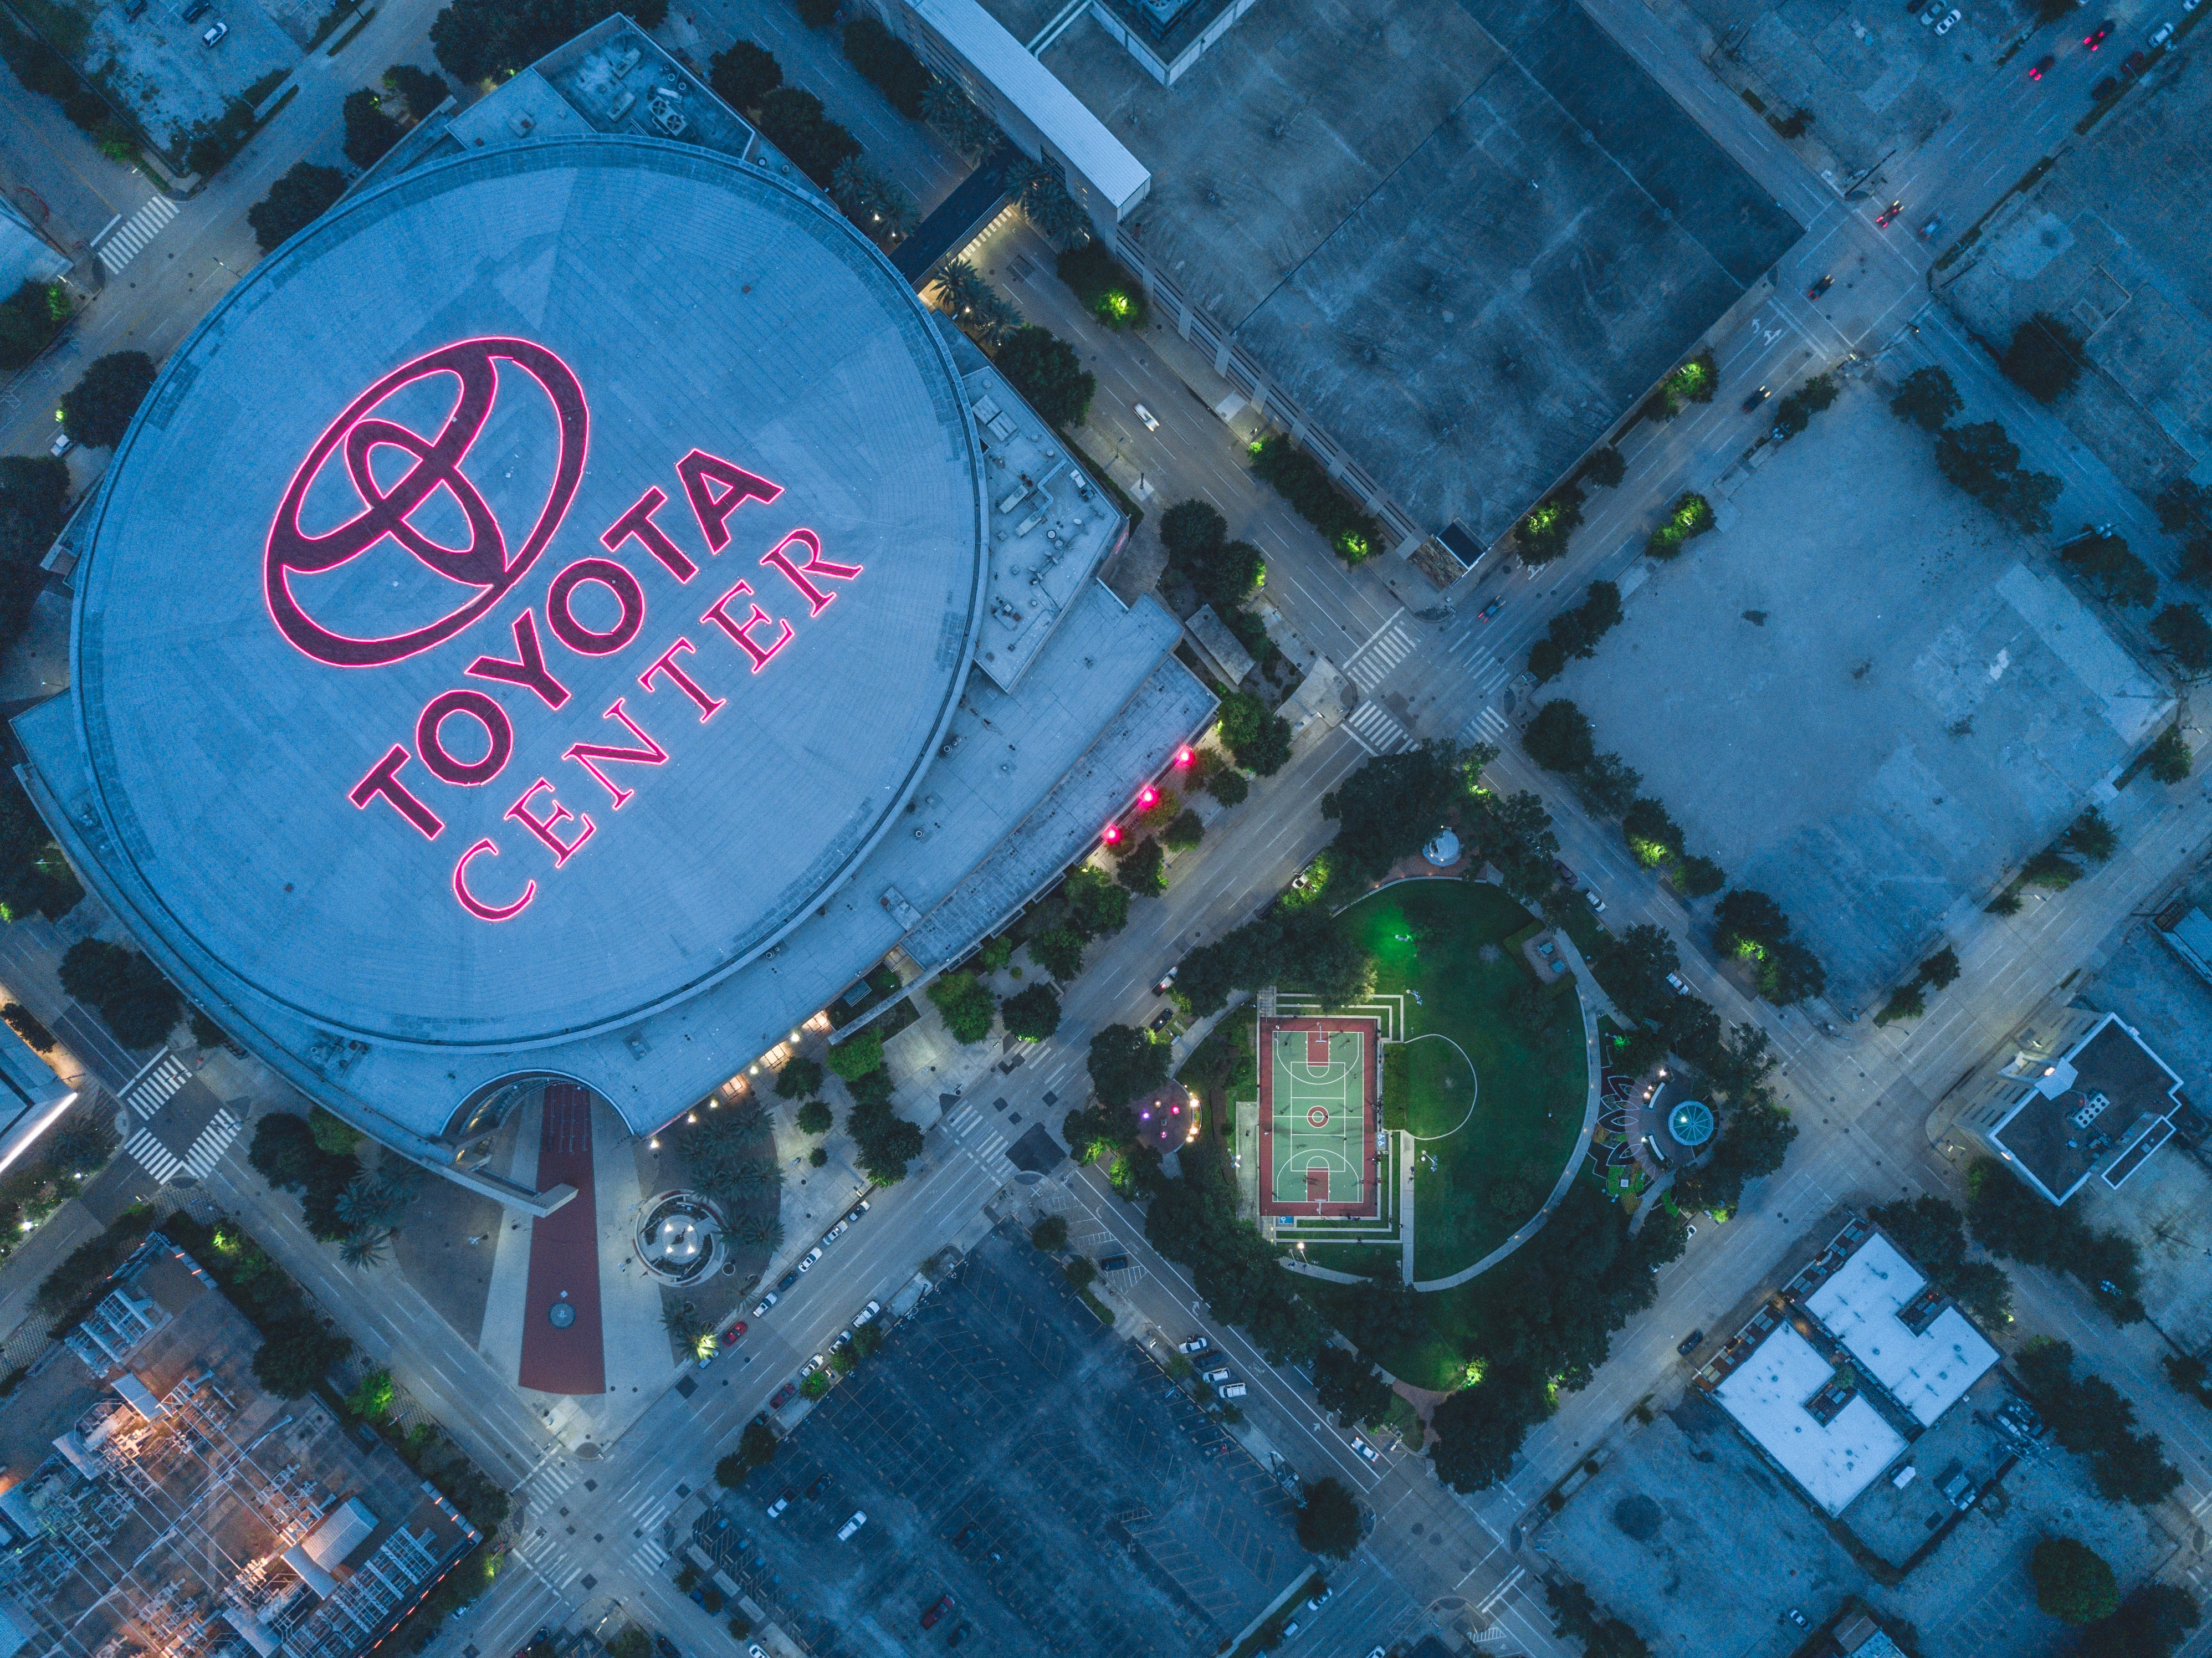 Drone view of Toyota Center and surrounding pitch and buildings